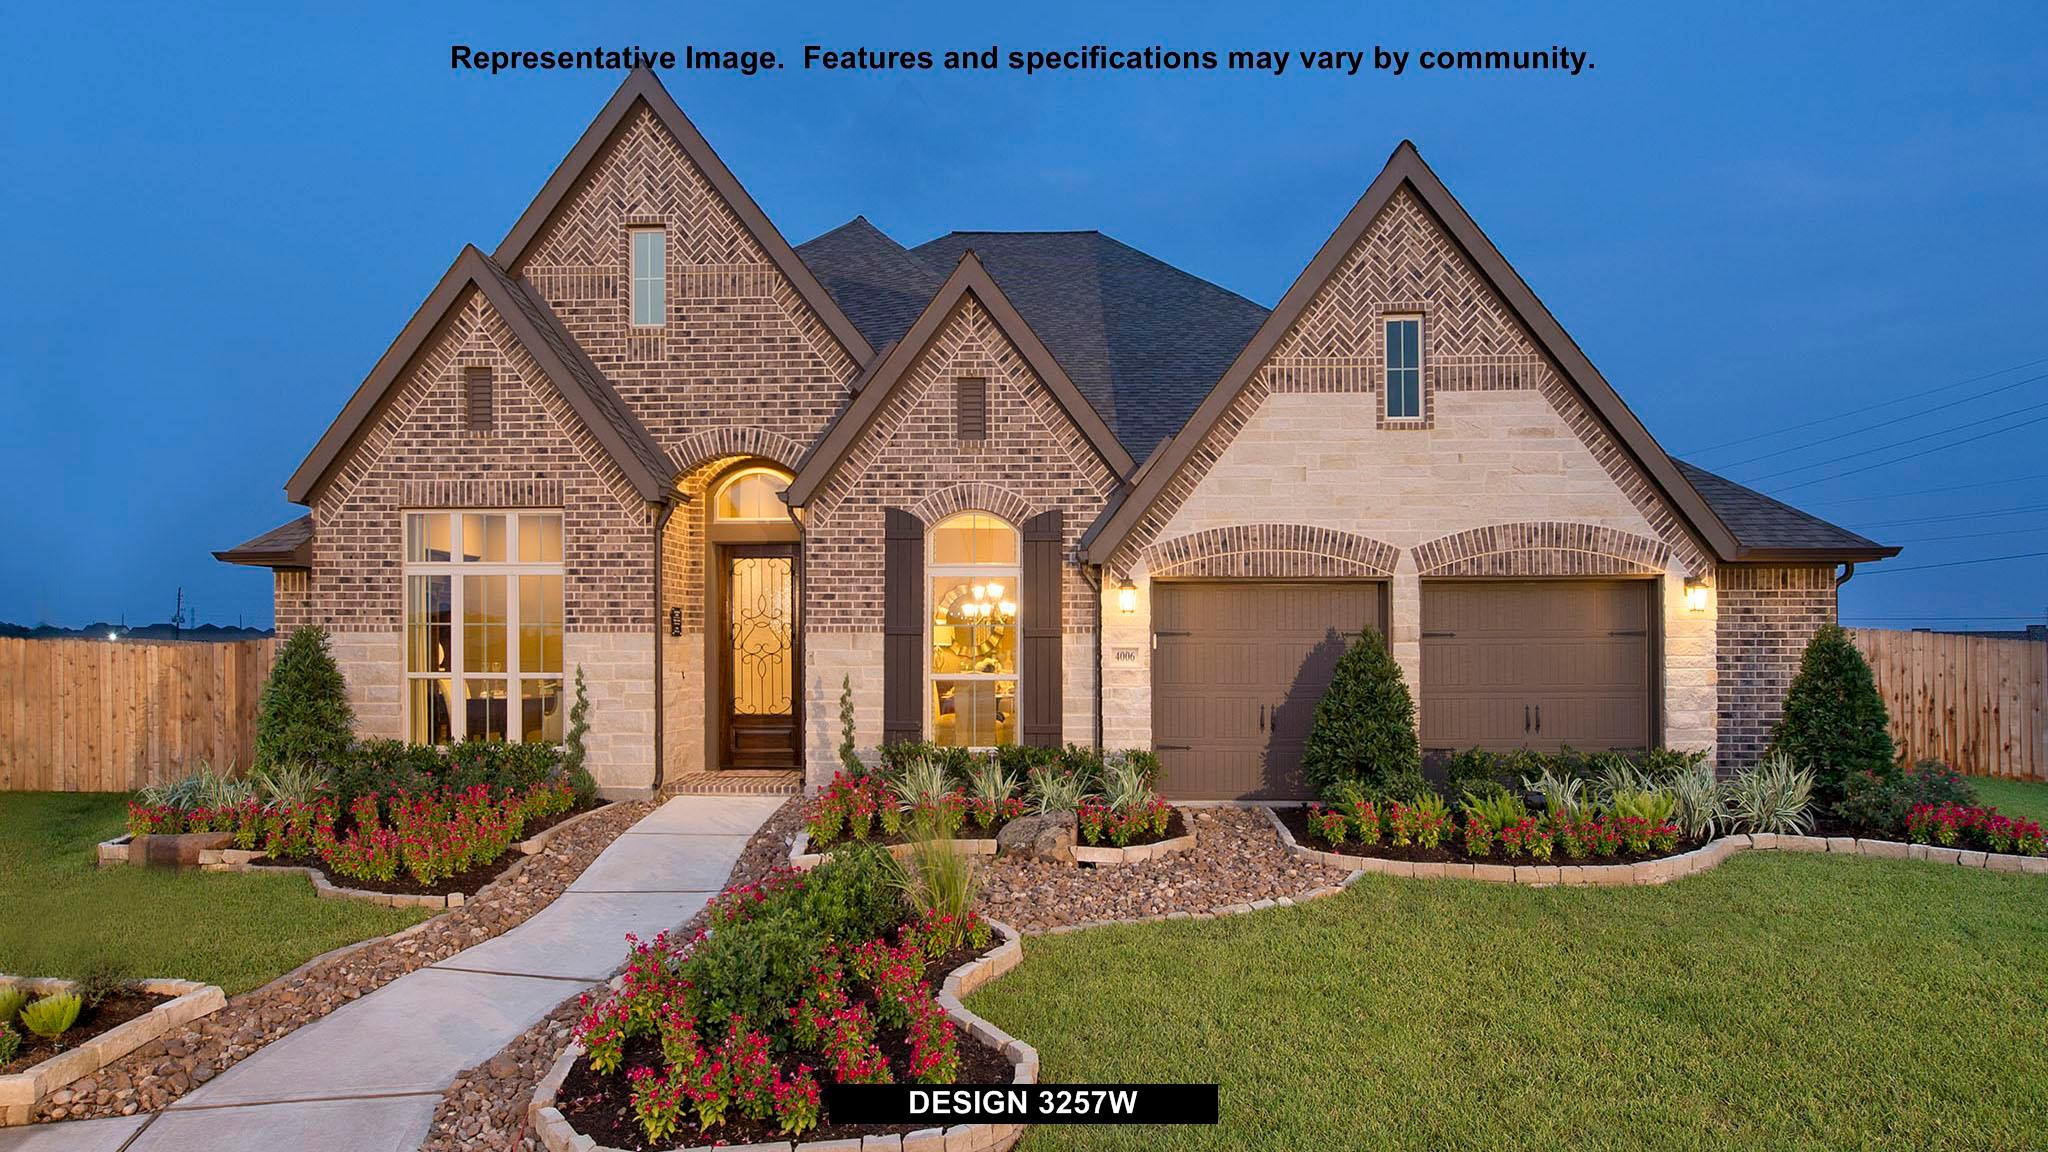 3257W - Firethorne: Firethorne 60': Katy, TX - Perry Homes